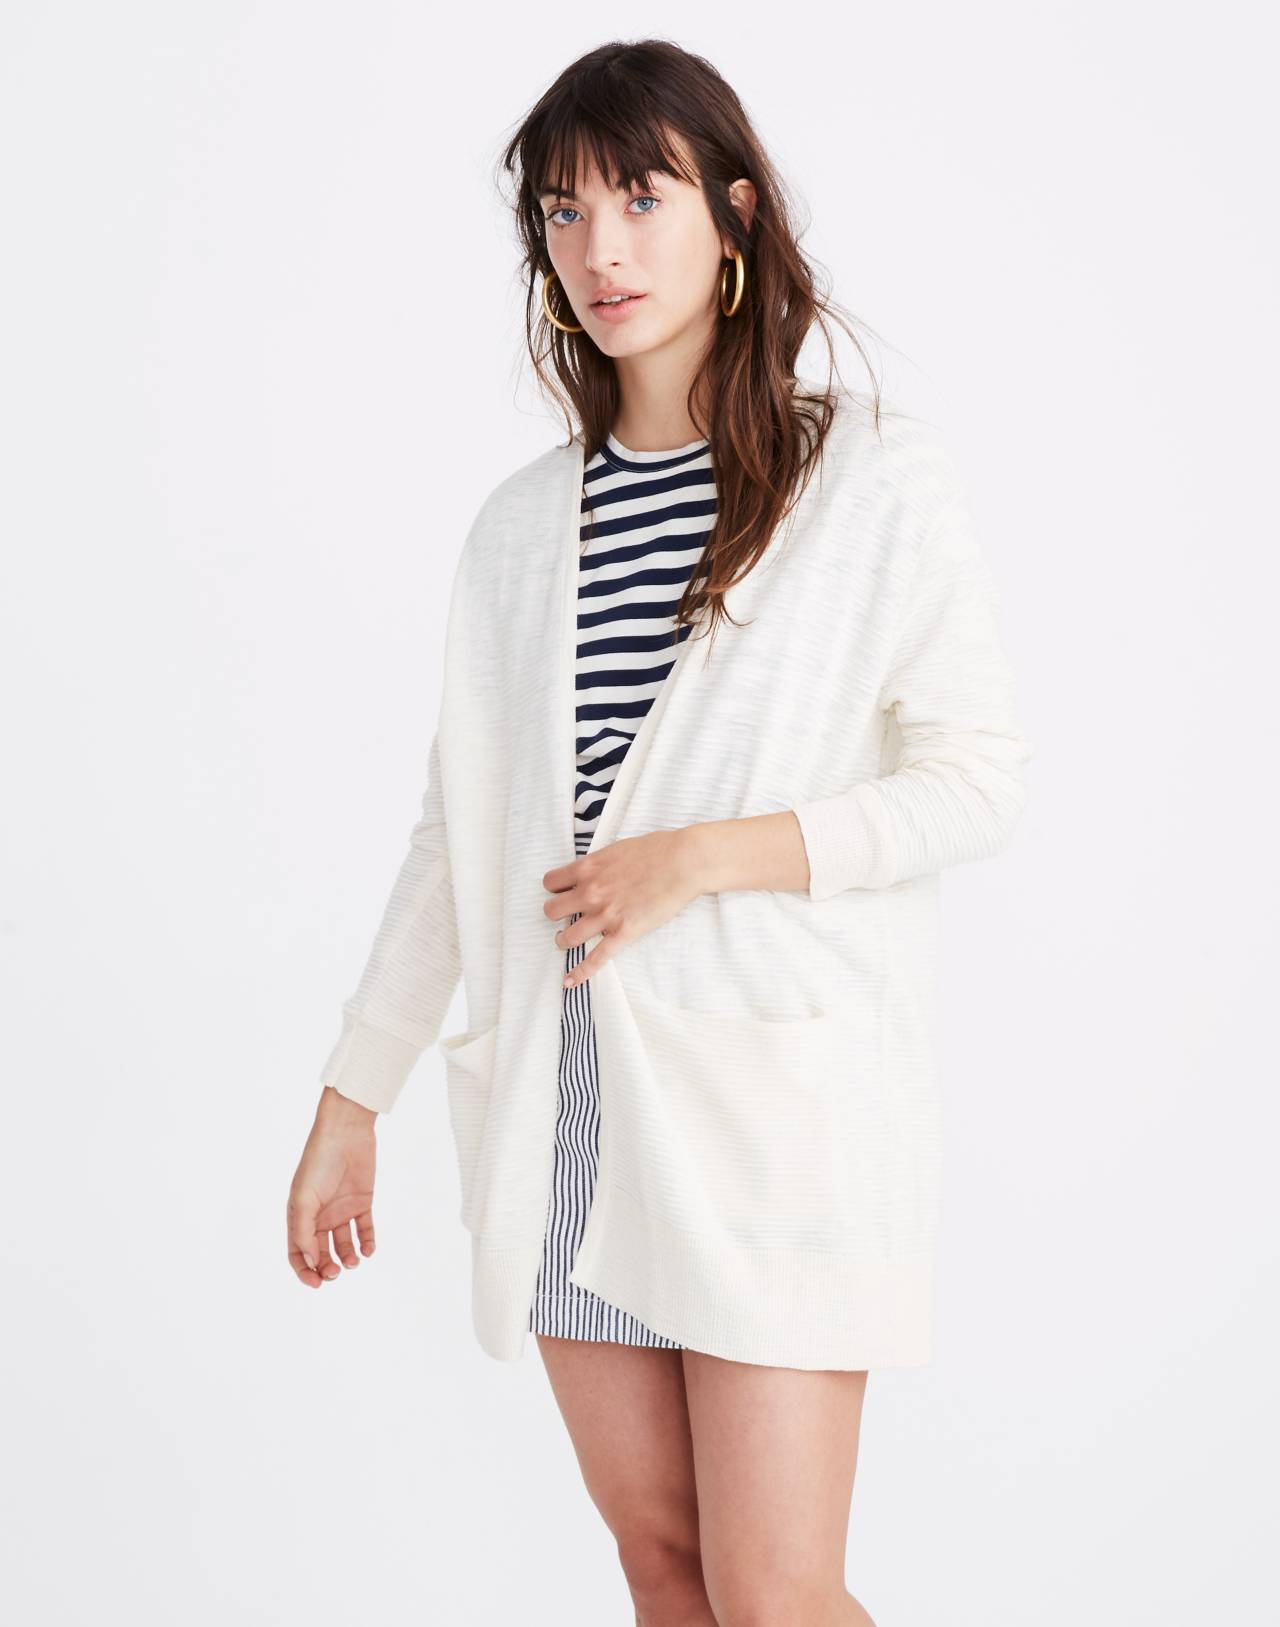 Summer Ryder Cardigan Sweater in Stripe in pearl ivory image 1